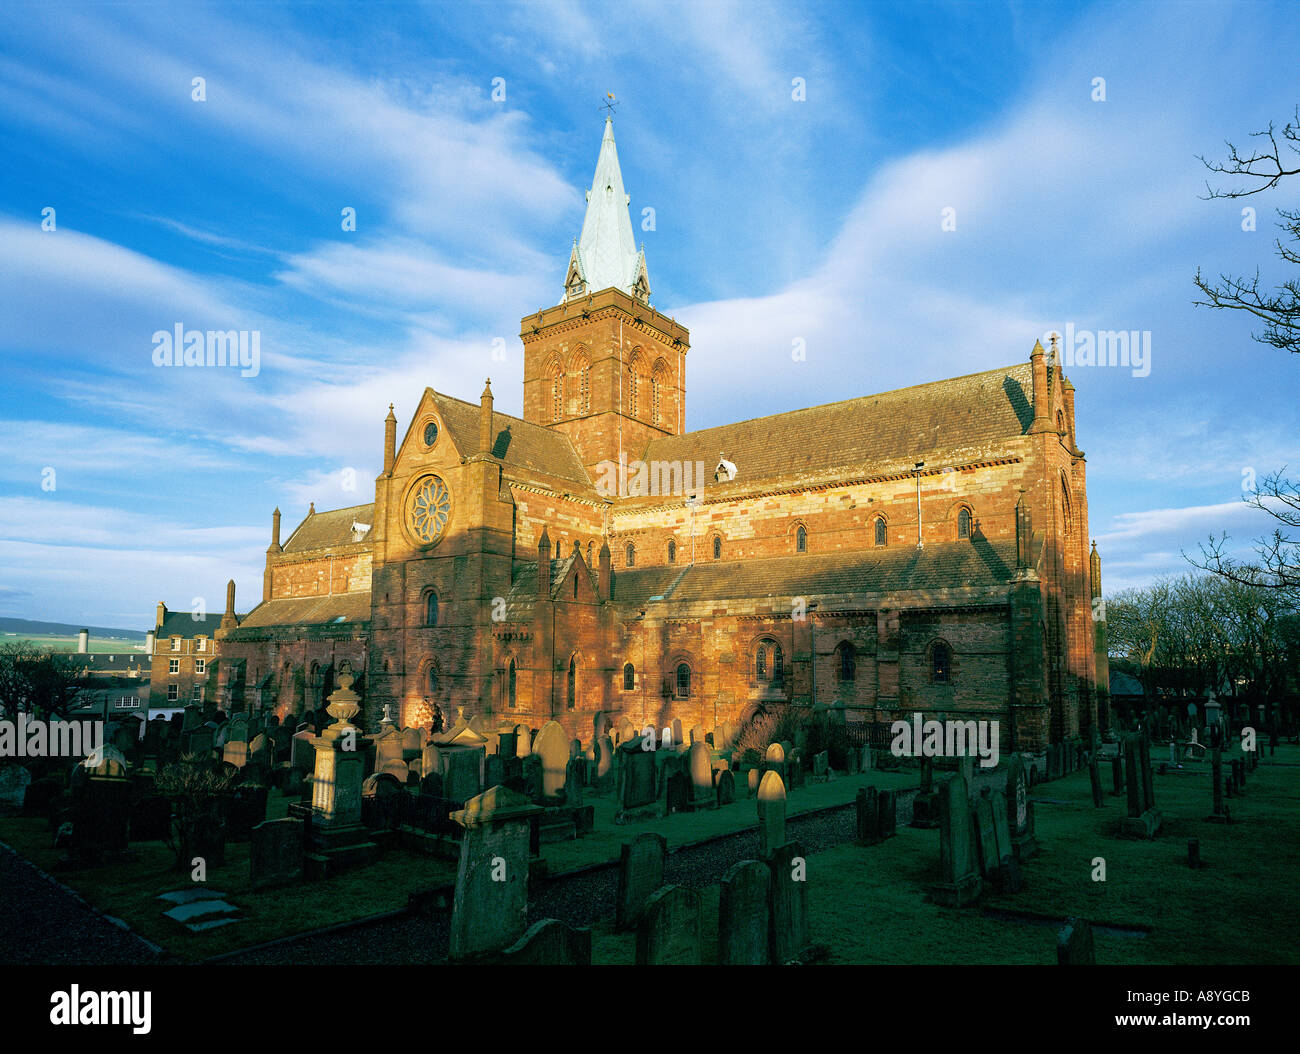 The Cathedral of St. Magnus in the Orkney Island capital of Kirkwall dates from 1137. Mainland, Orkney, Scotland - Stock Image